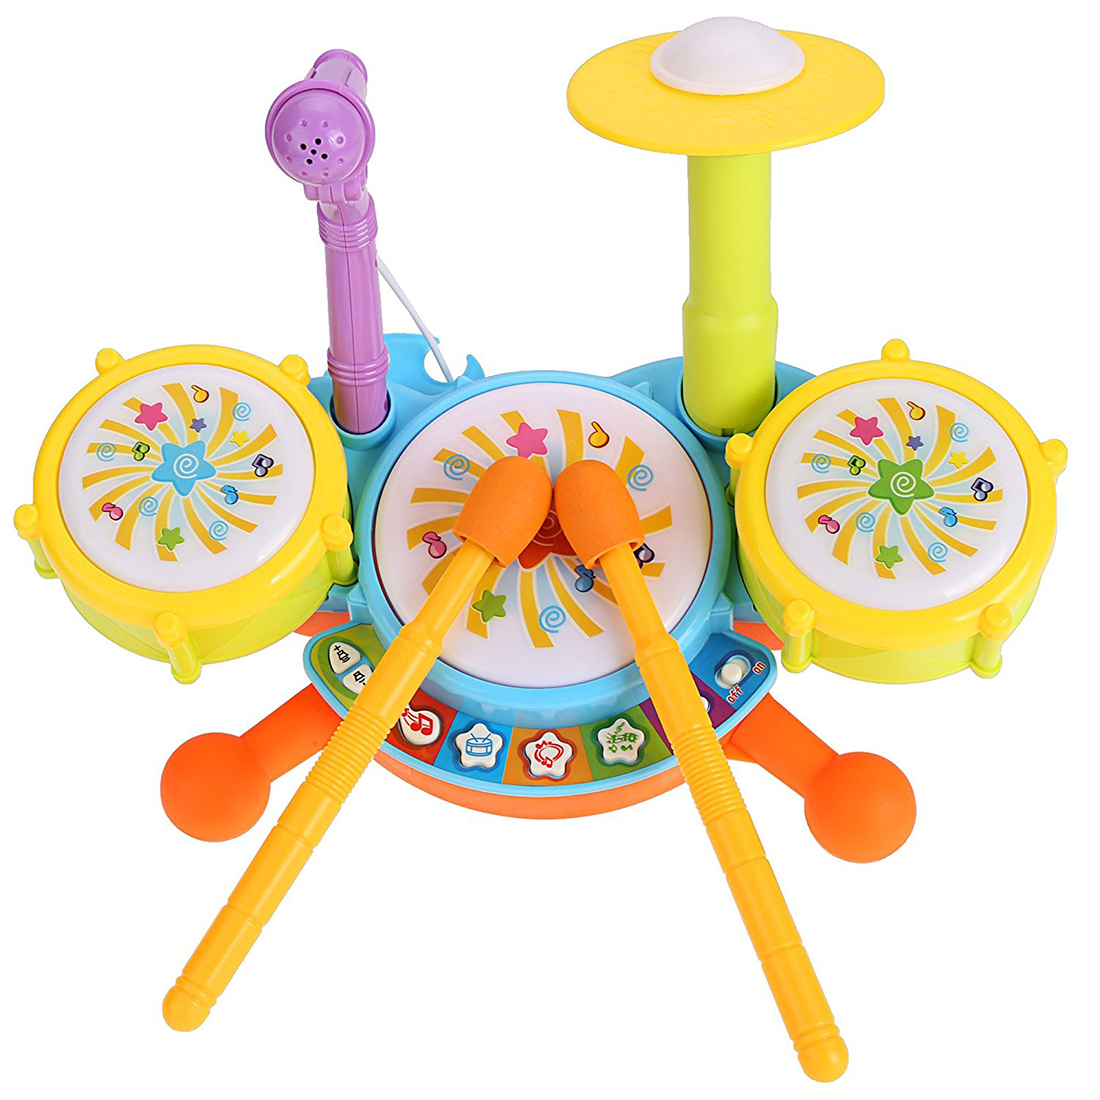 Kids Drum Set Educational Toys For Toddlers Gifts Music In